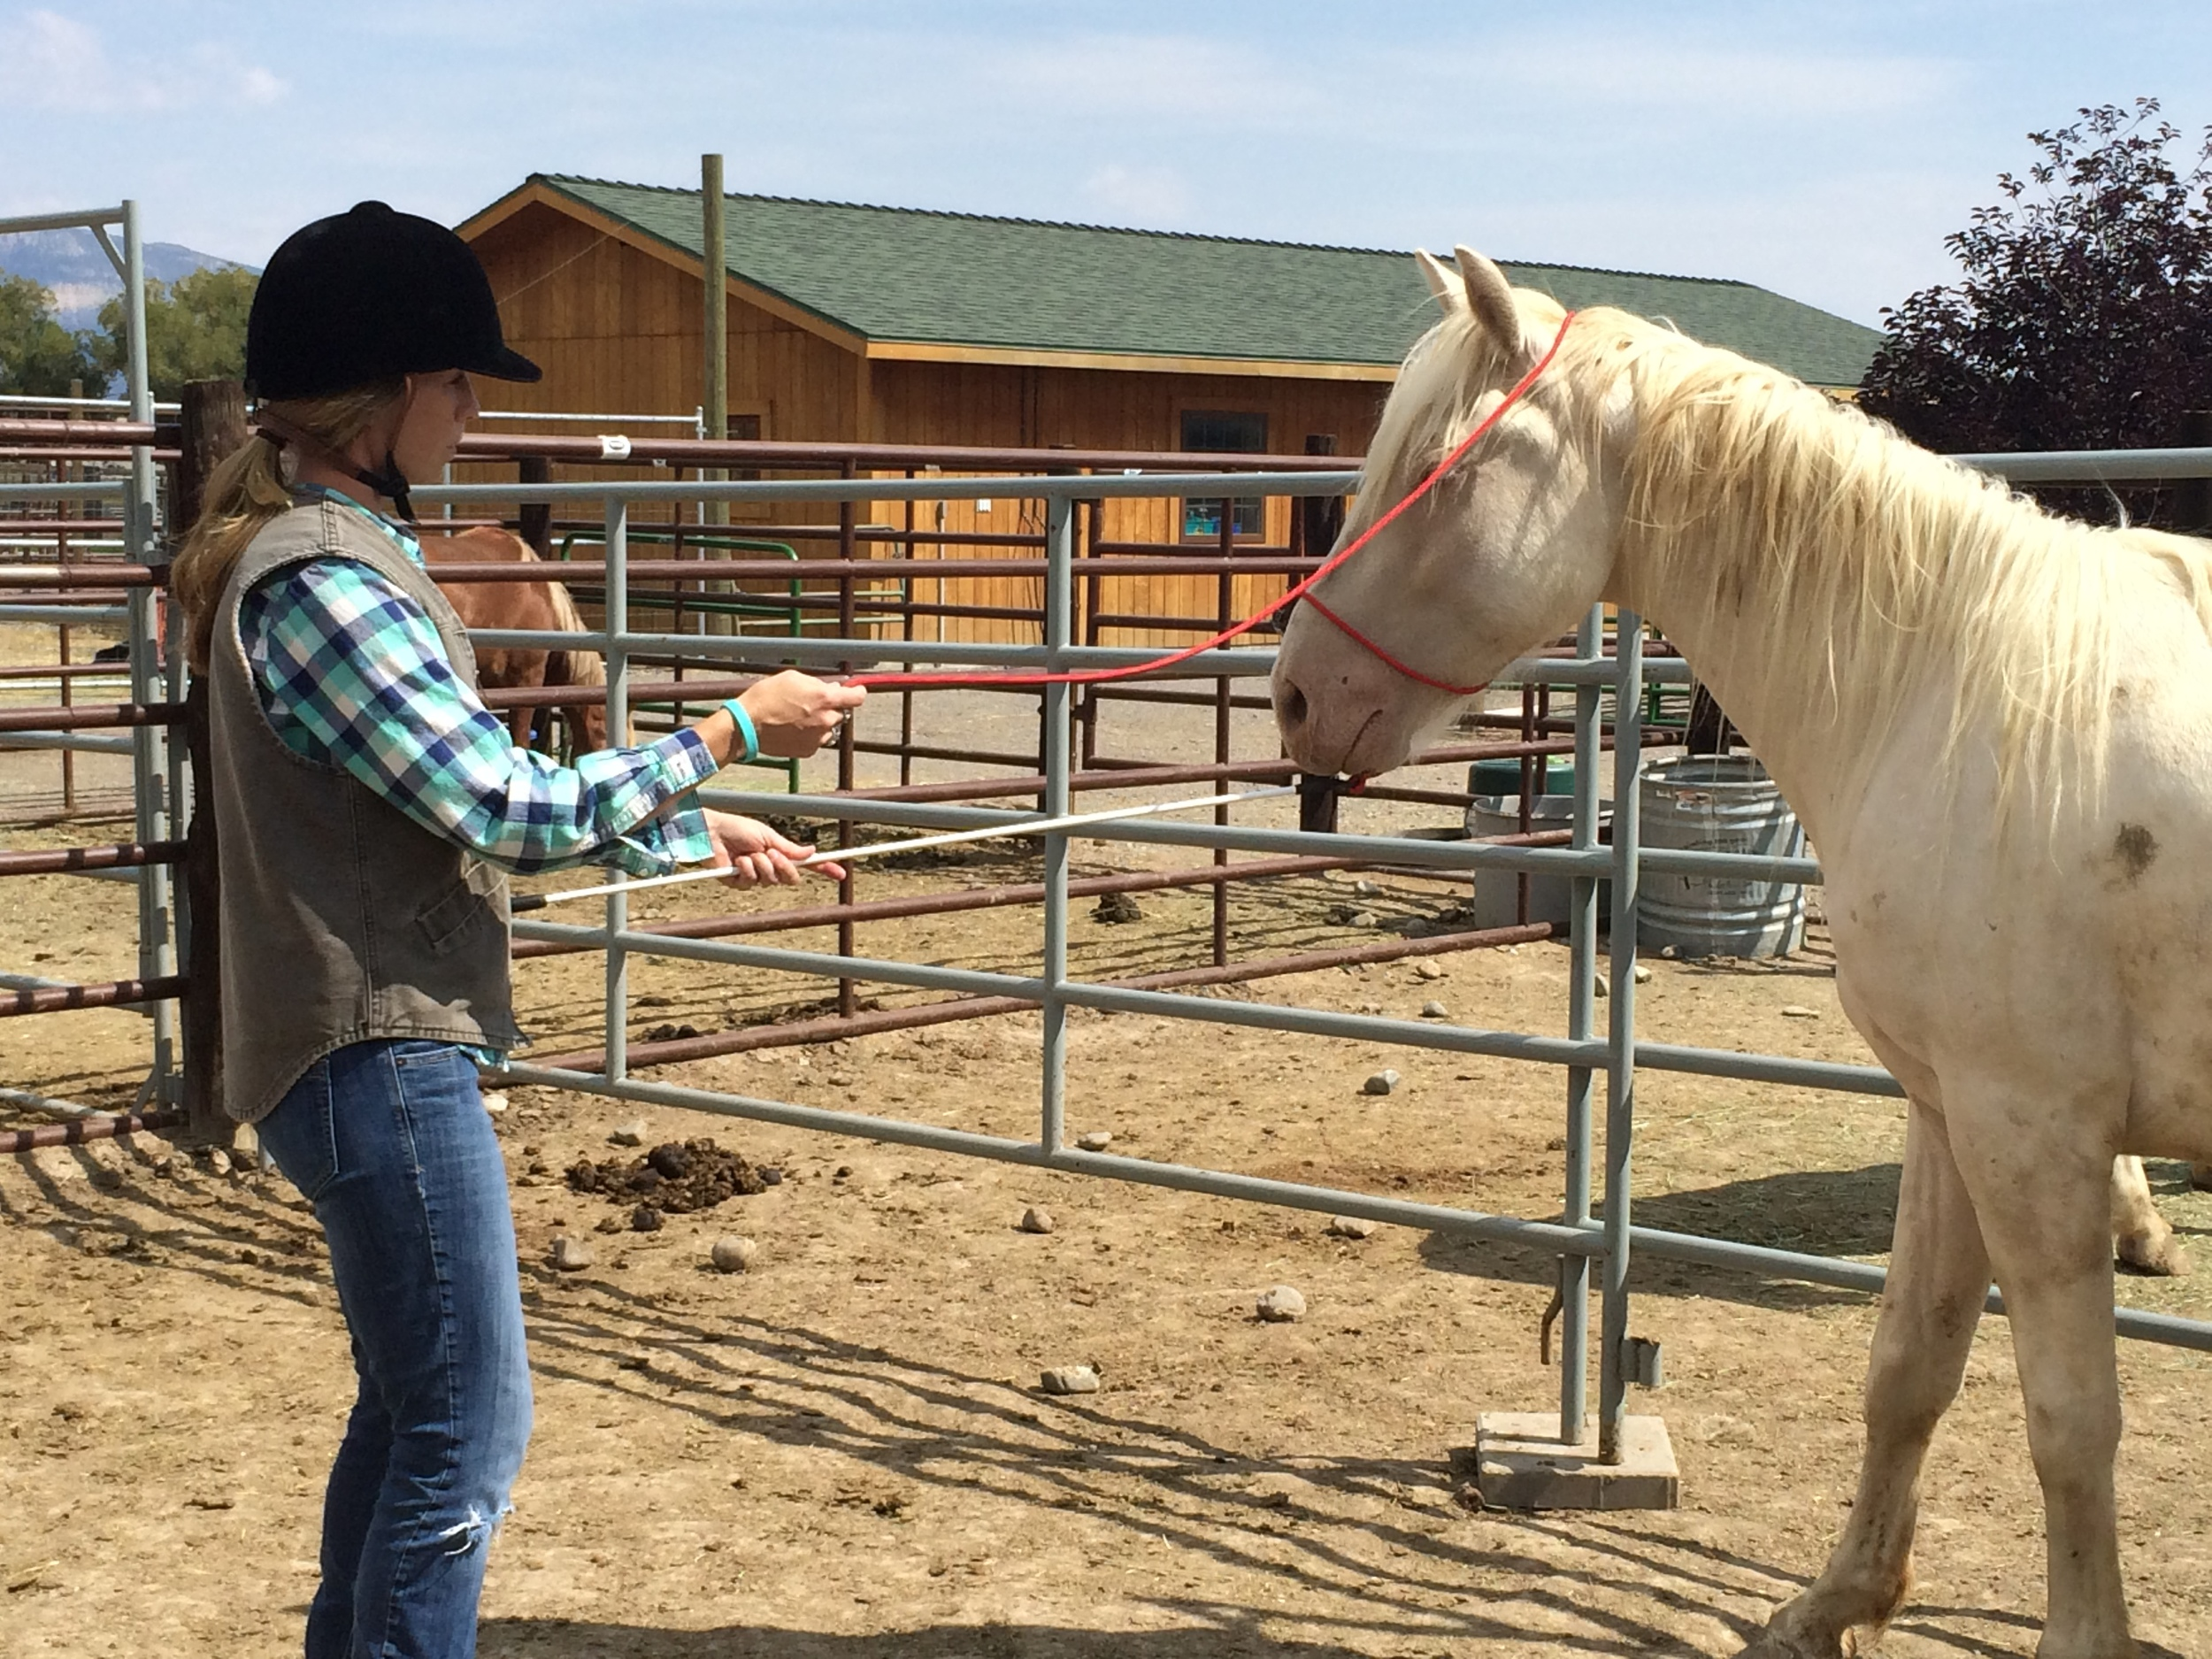 Horseman's rope gentling a McCullough Peaks mustang at the 2014 Reach out to the Untouched Horse Clinic.